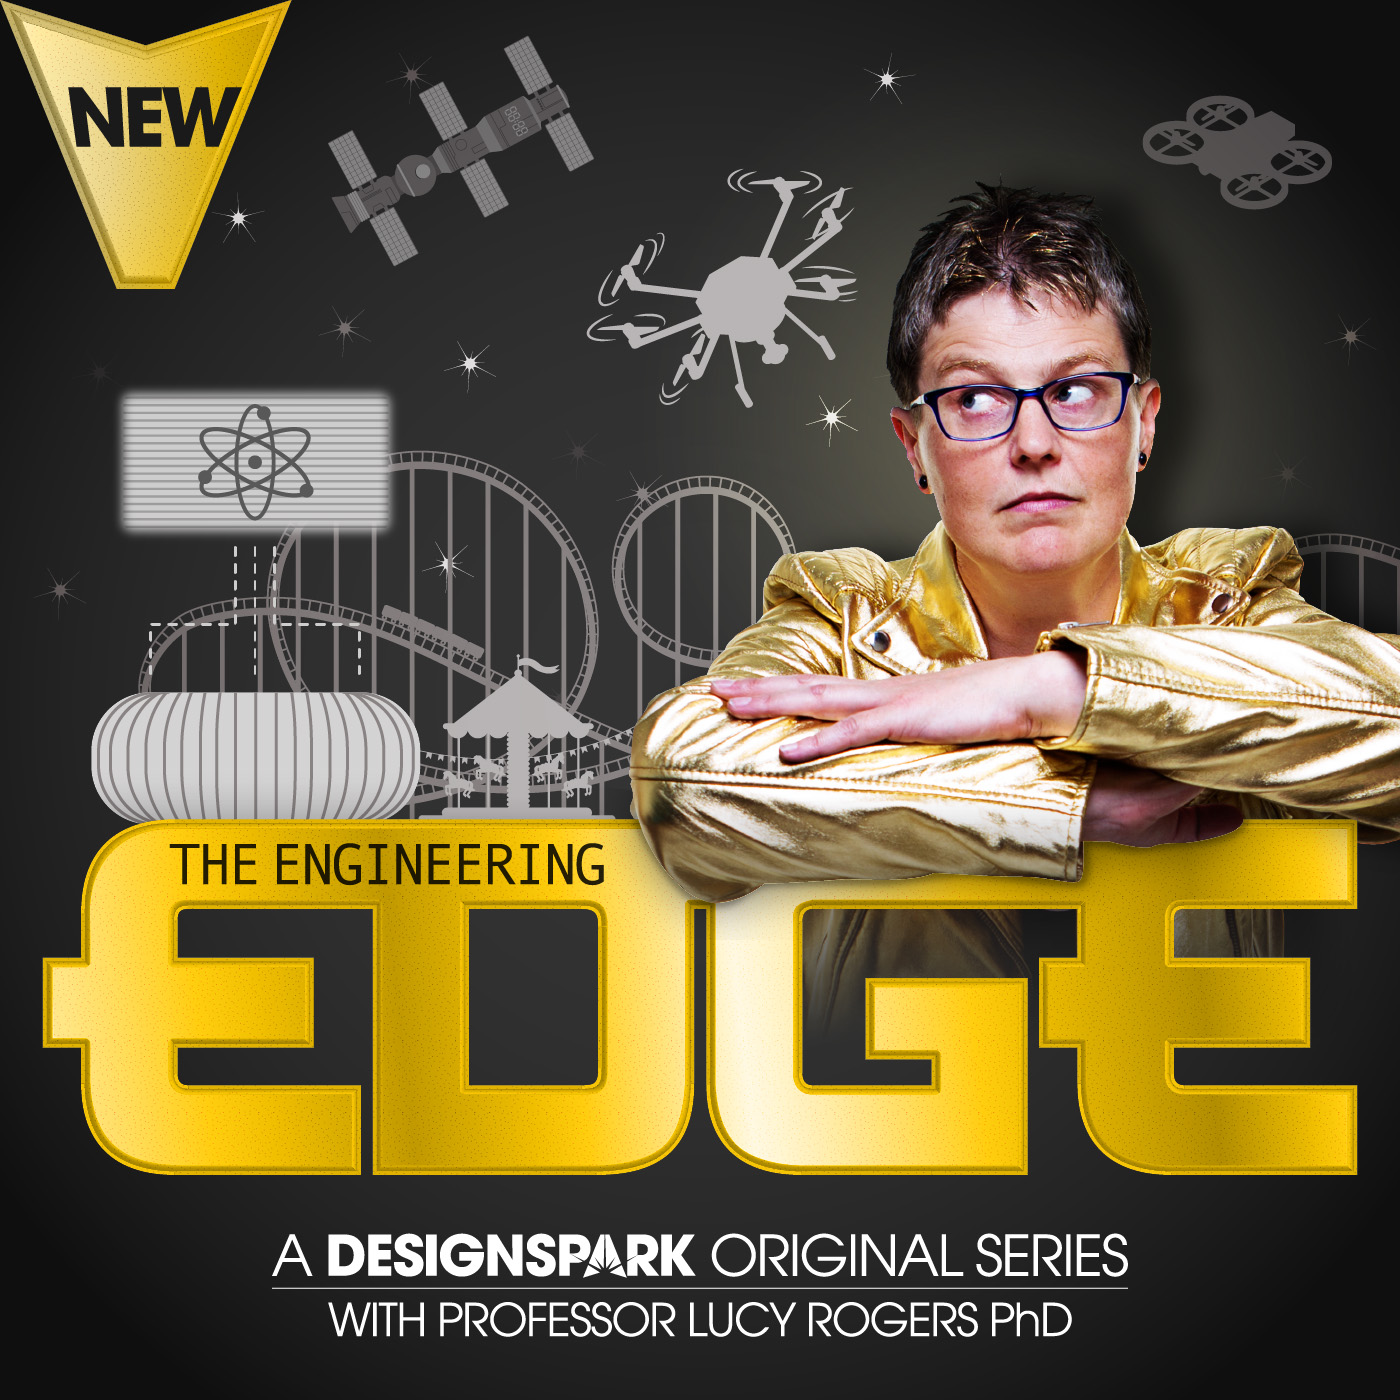 The Engineering Edge